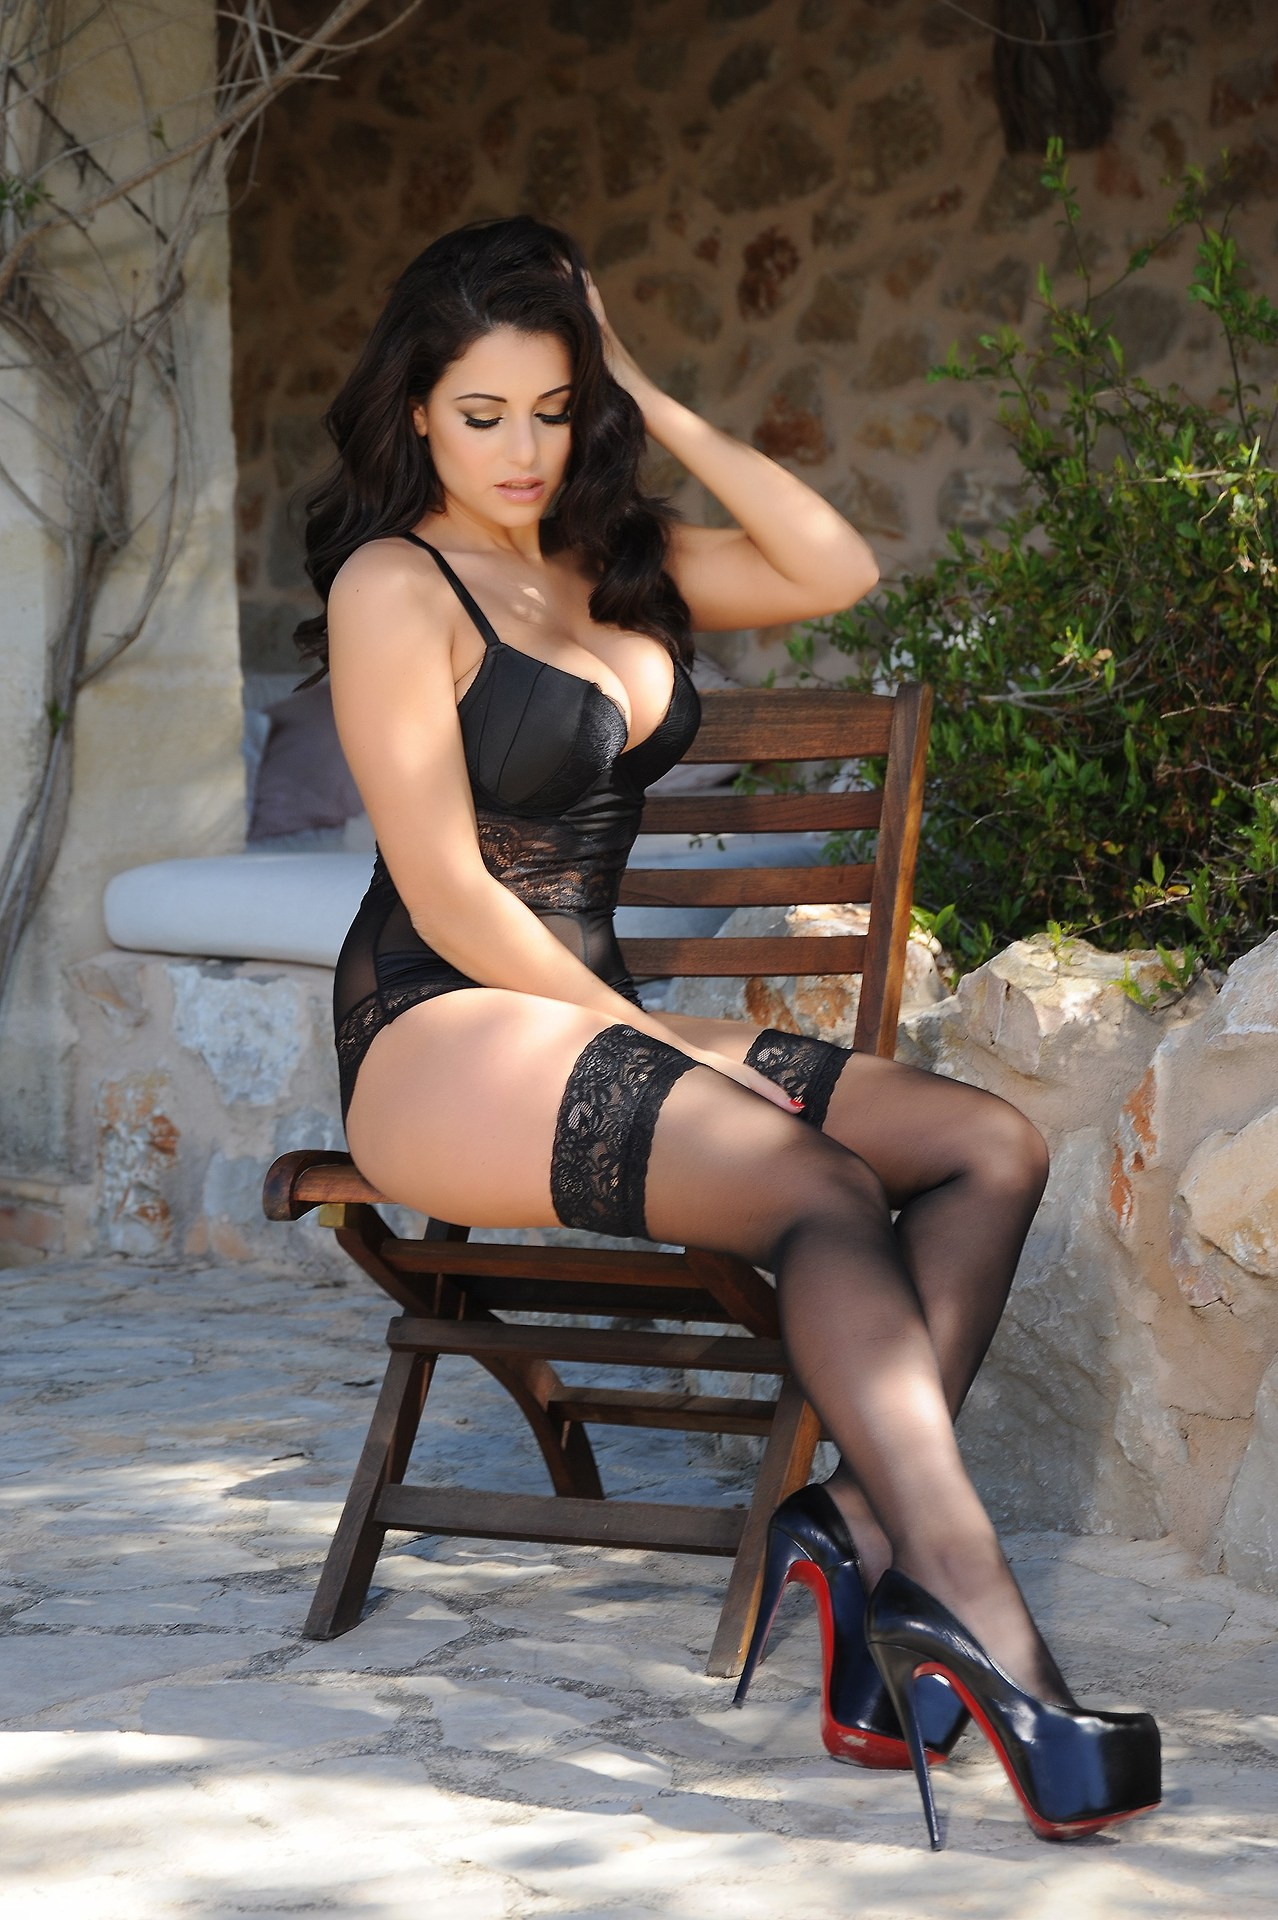 bbw lingerie images and girls in lingerie gallery